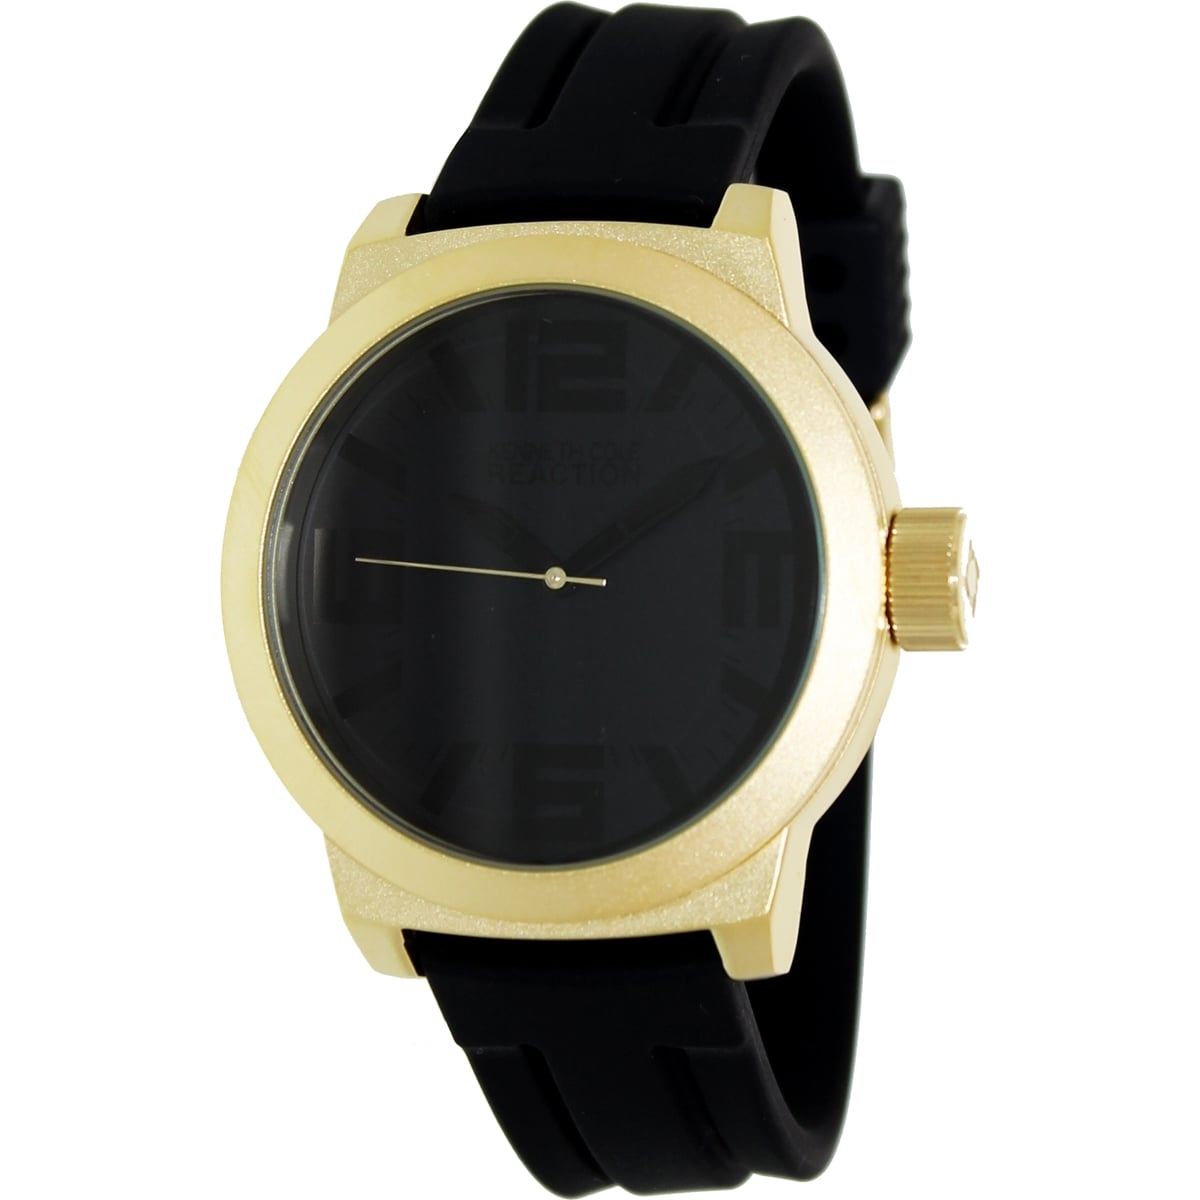 Kenneth Cole Reaction Men's RK1316 Black Silicone Quartz Watch with Black Dial